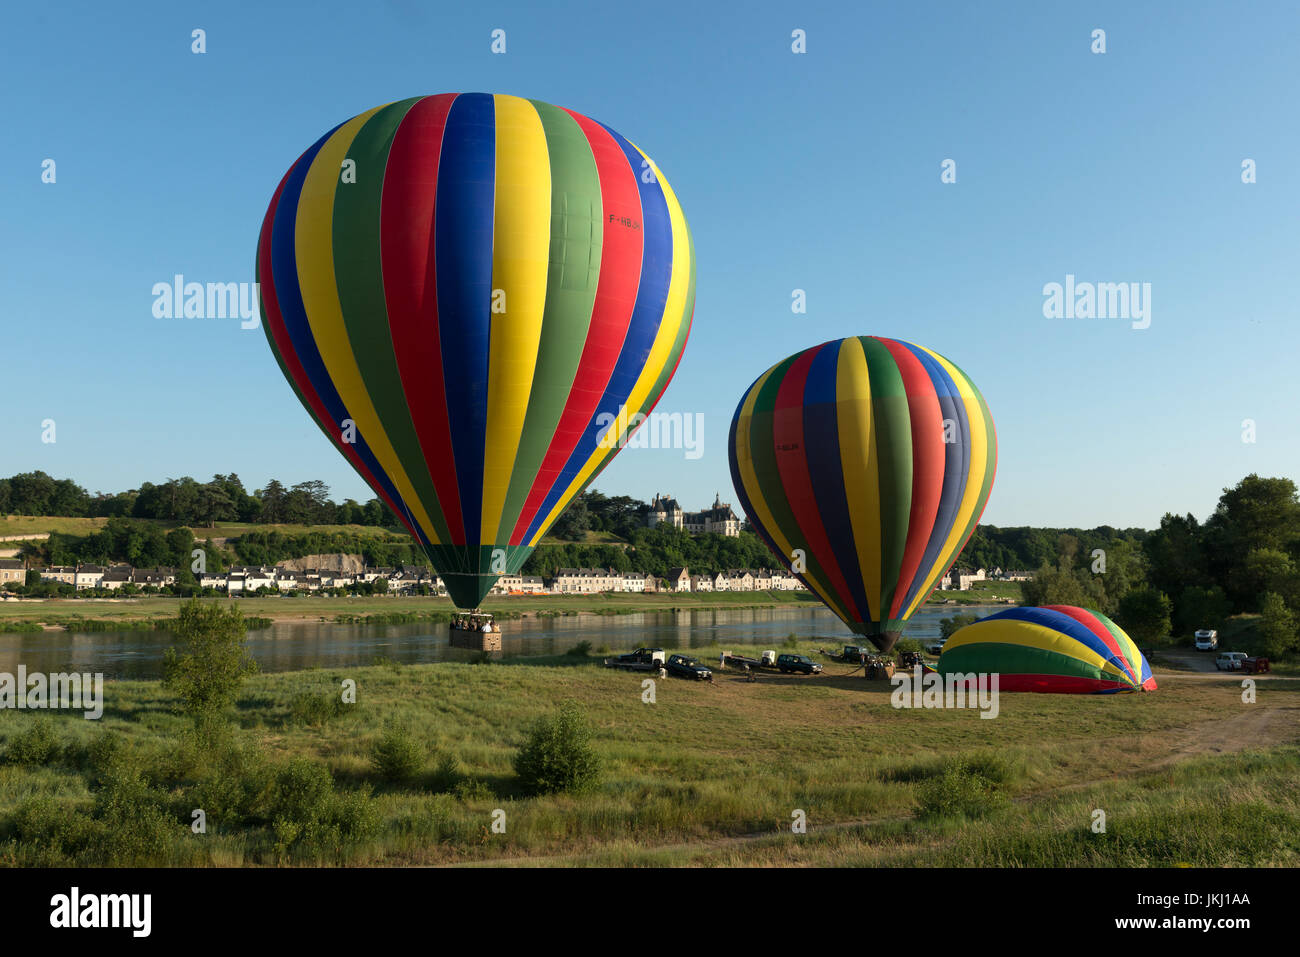 striped hot air baloons in front of chaumont sur loire, france Stock Photo